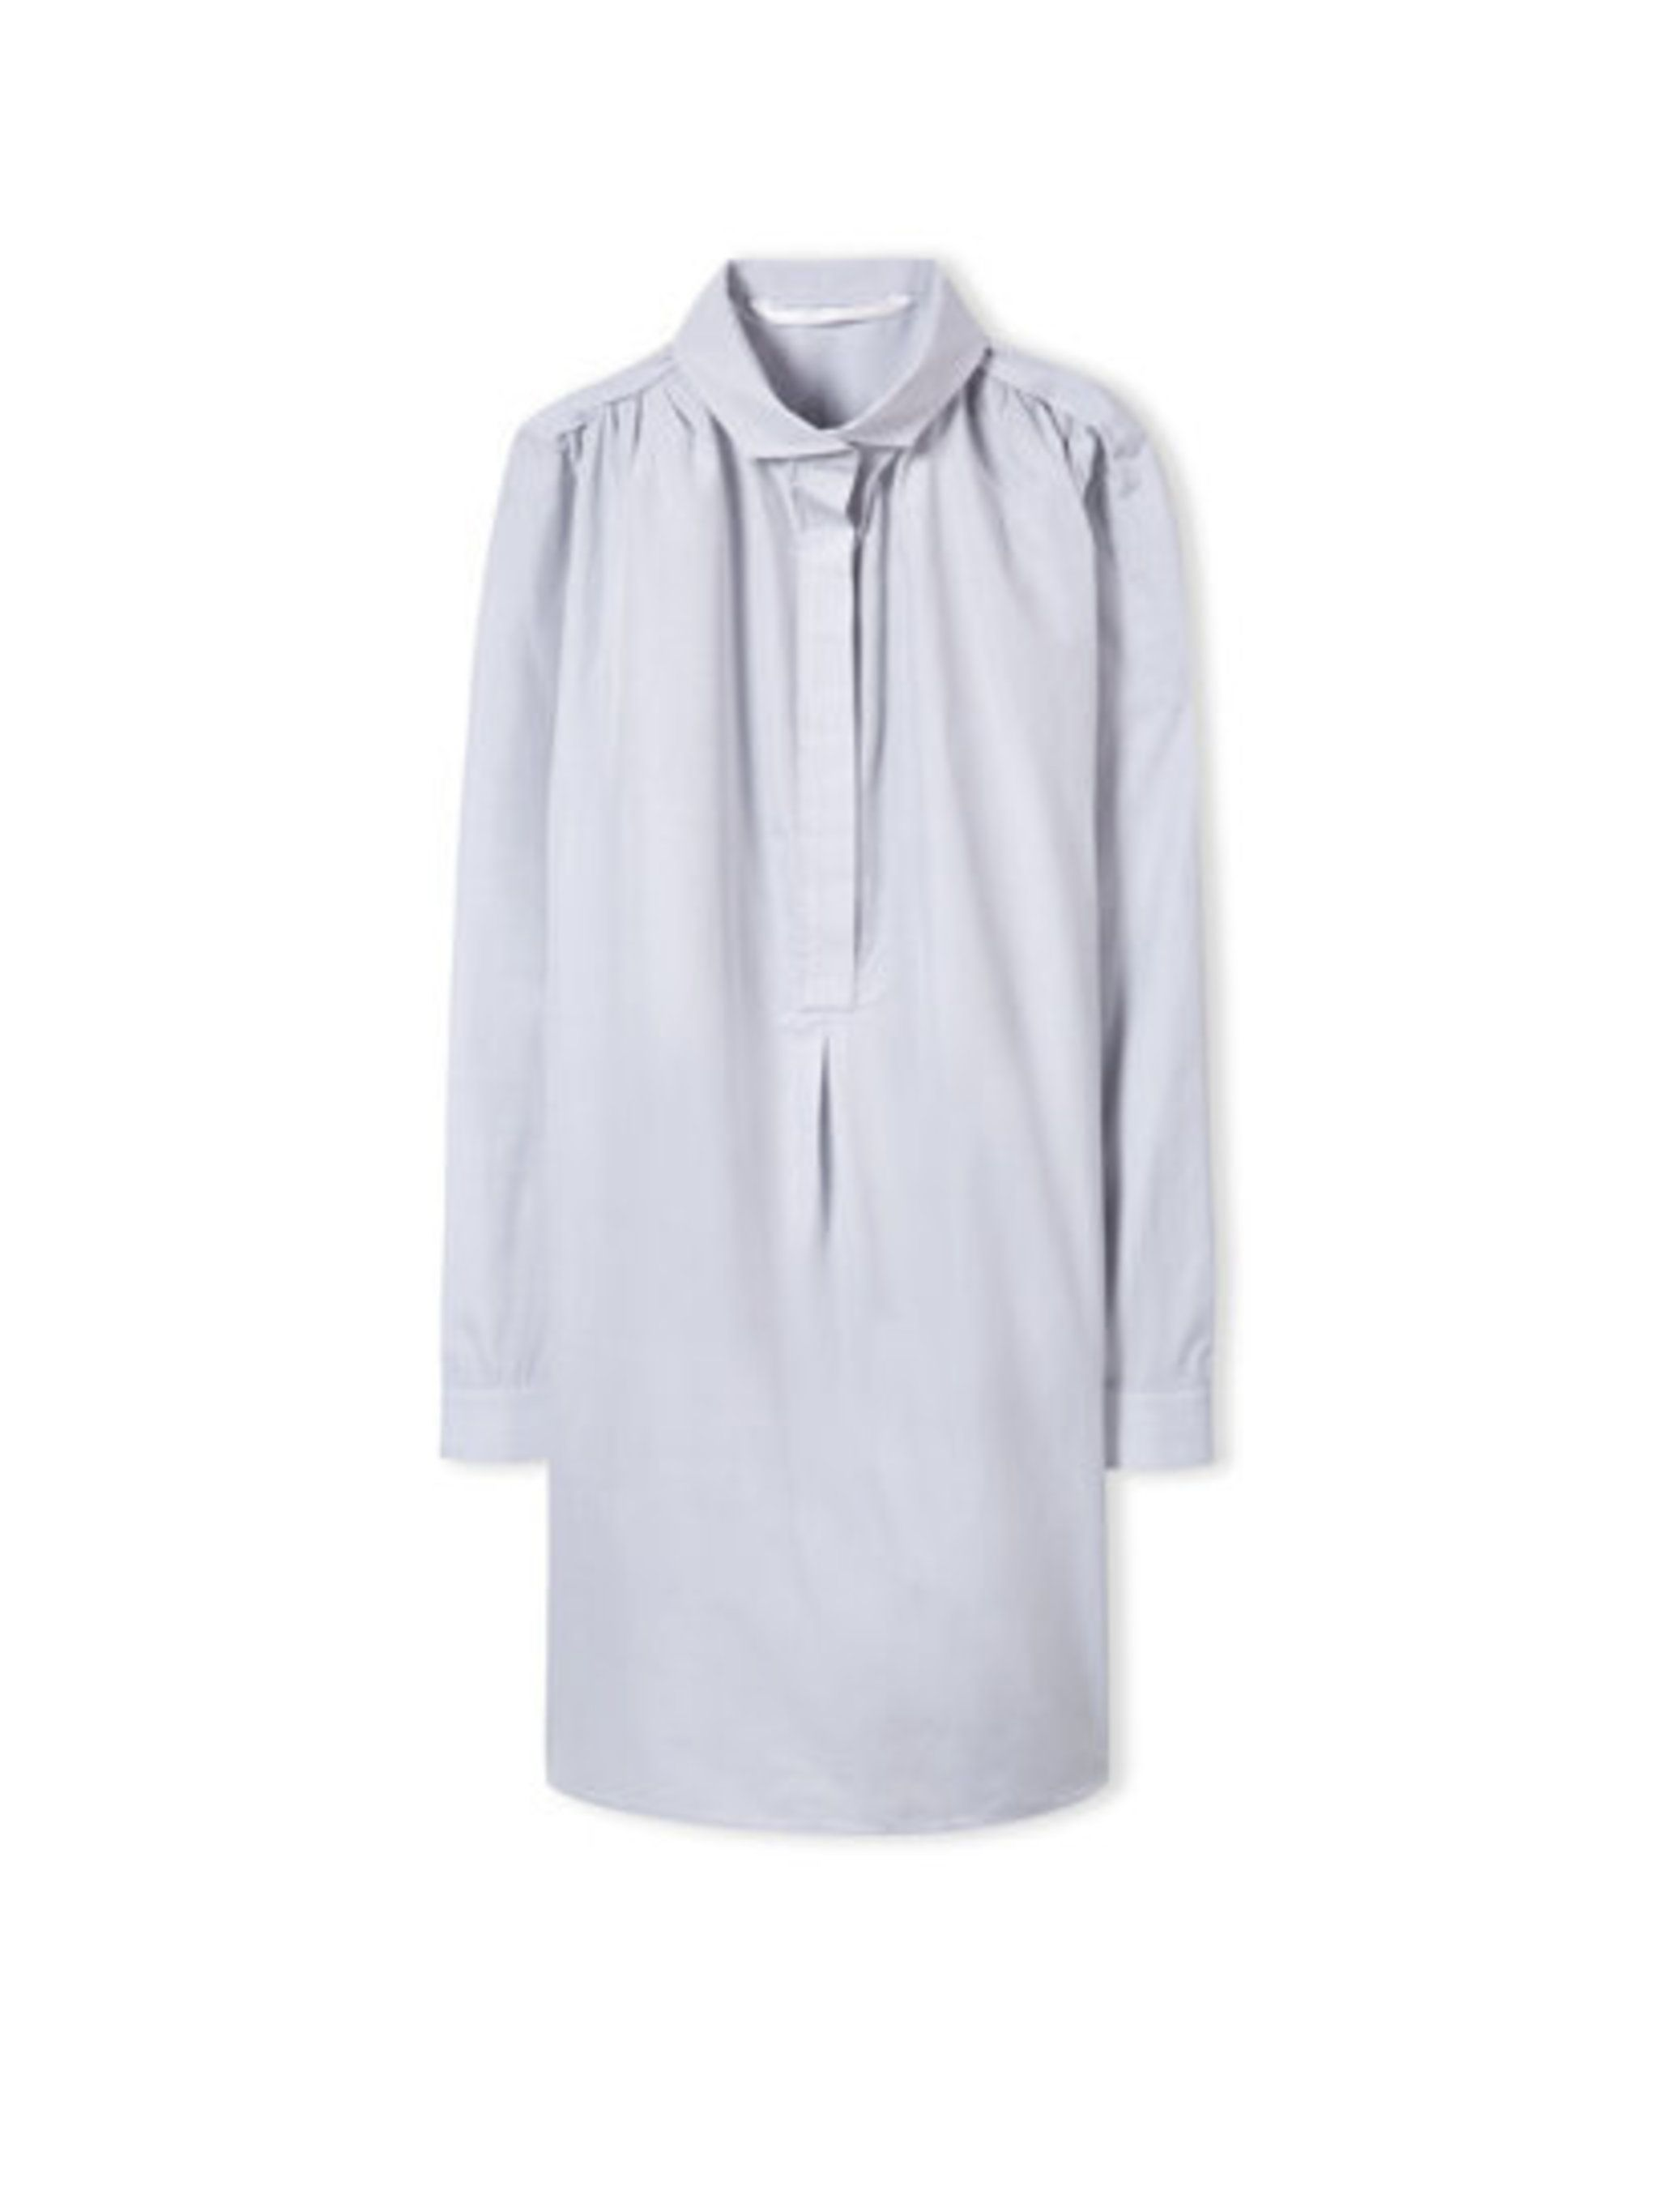 "<p>A luxury basic that every wardrobe needs. Wear with bear legs and ankle boots for easy (and breezy) springtime dressing. </p><p><a href=""http://ateaoceanie.com/shop/dresses/stevenson-shirt-dress-oxford-blue-marled-cotton"">Atea Oceanie</a> shirt dress,"